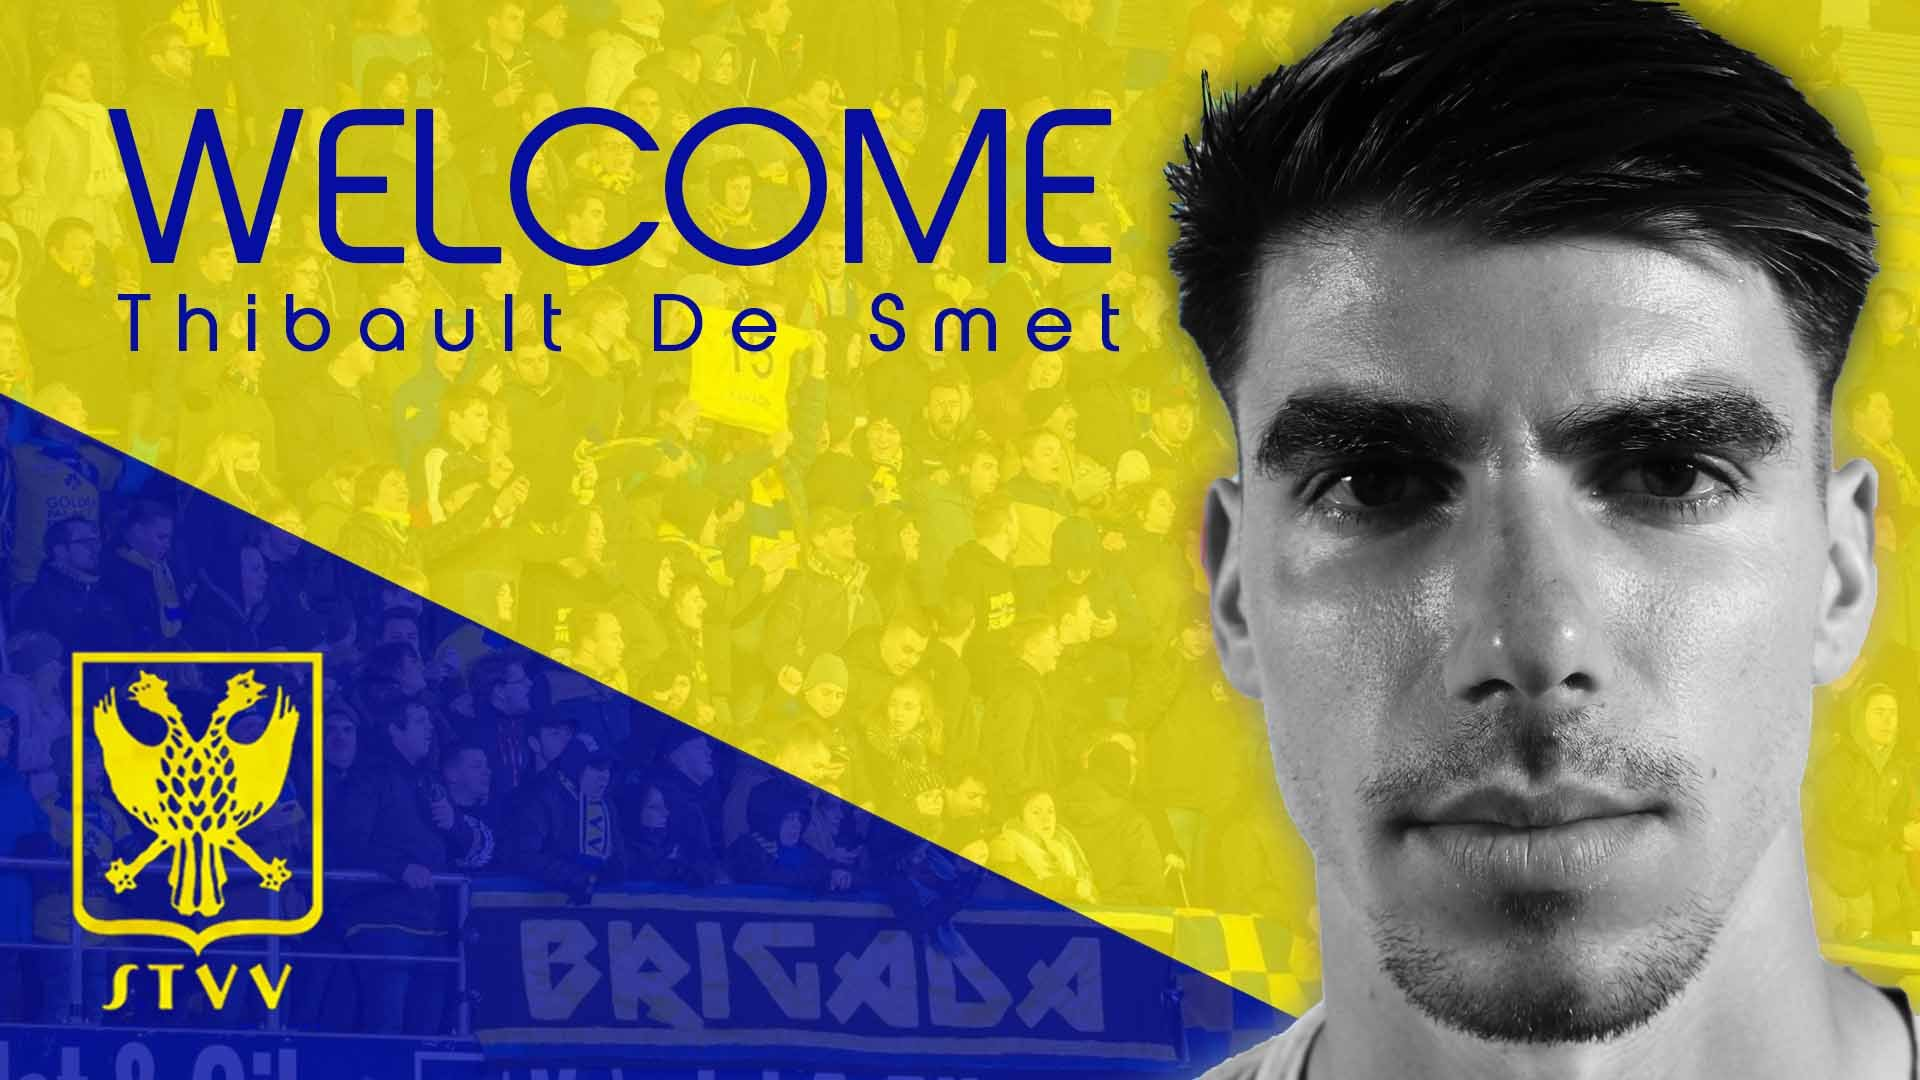 #welcomethibault